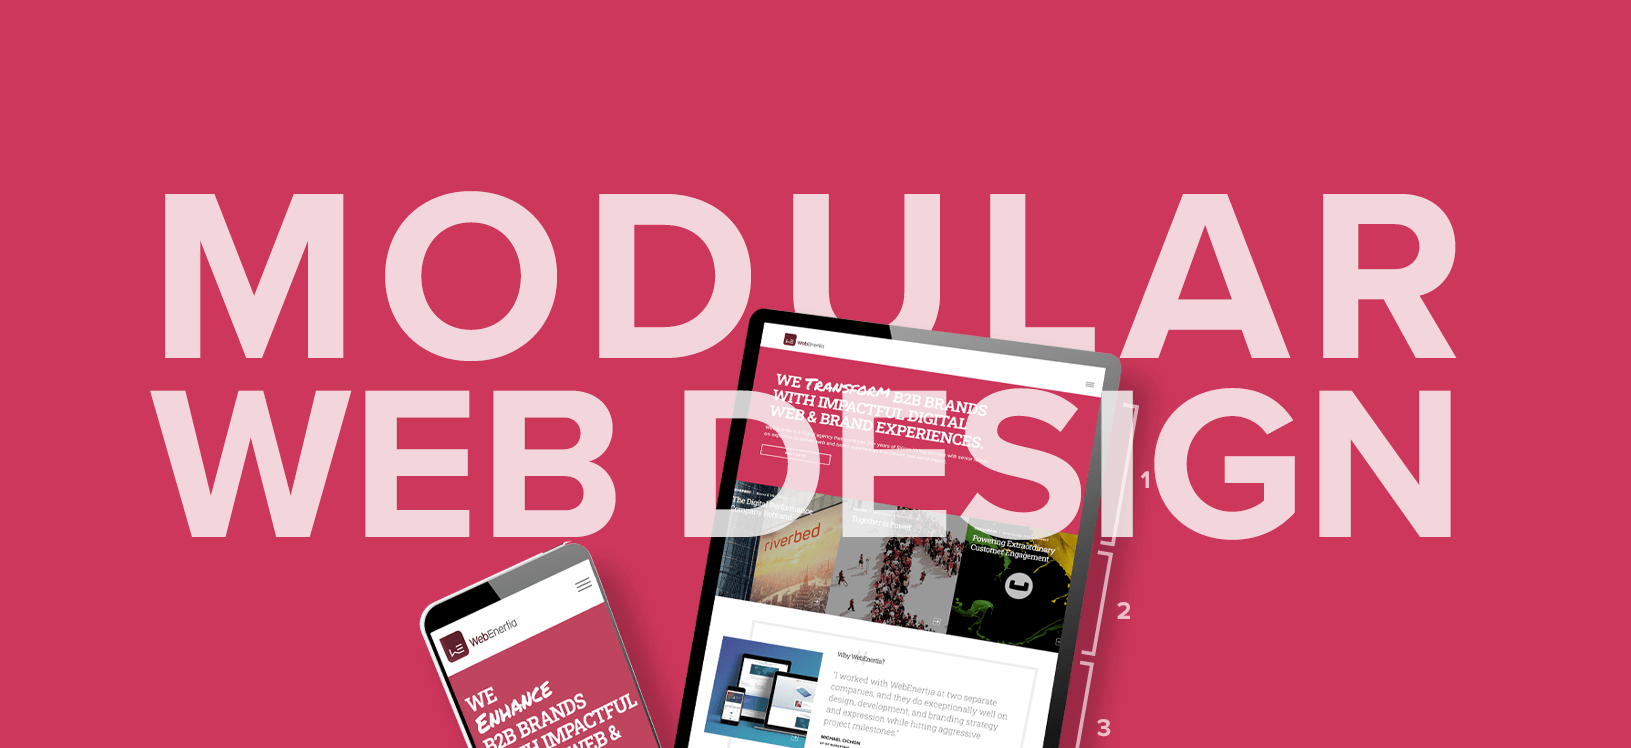 Modular Web Design To Maximize Flexibility And Efficiency